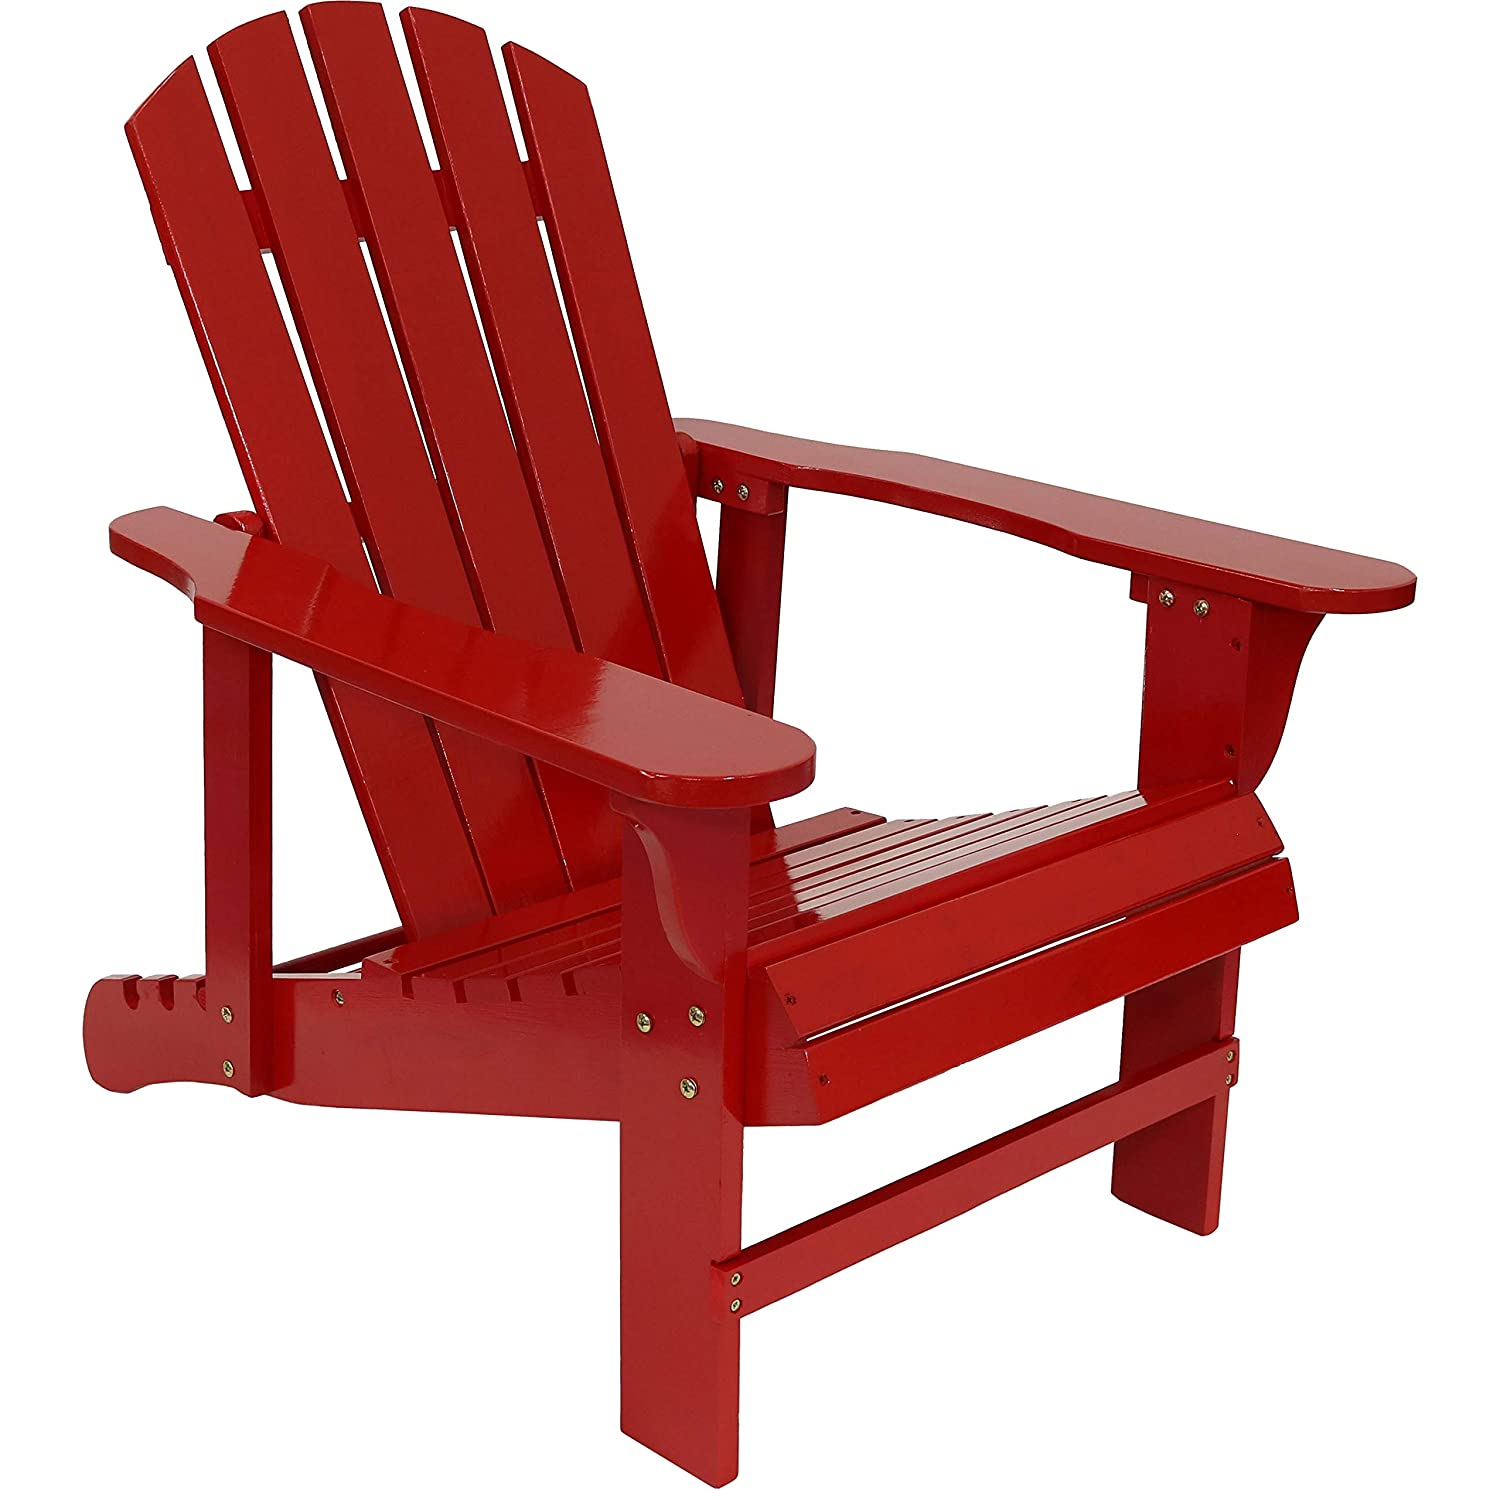 Sunnydaze Wooden Outdoor Adirondack Chair with Adjustable Backrest, 250-Pound Capacity, Red